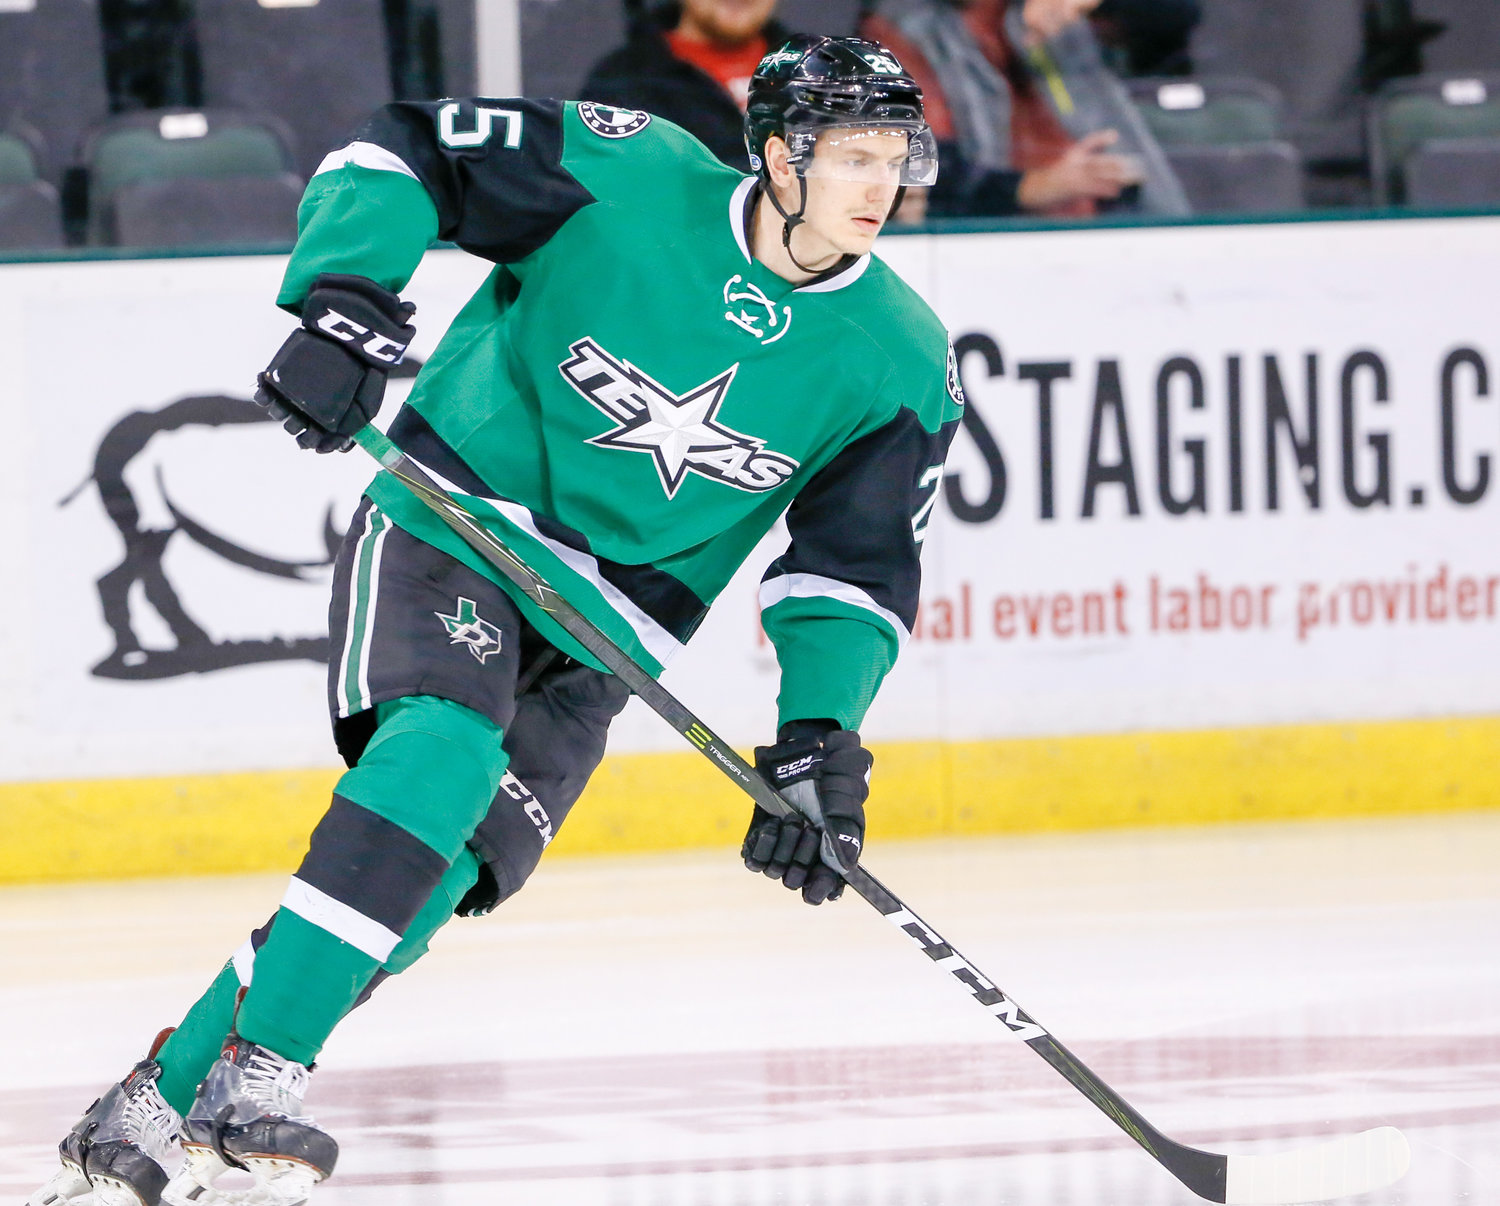 Denis Gurianov scored a hat trick in the first game of the weekend series for the Stars. texas won once and lost in a shootout in a two-game series with the Iowa Wild.